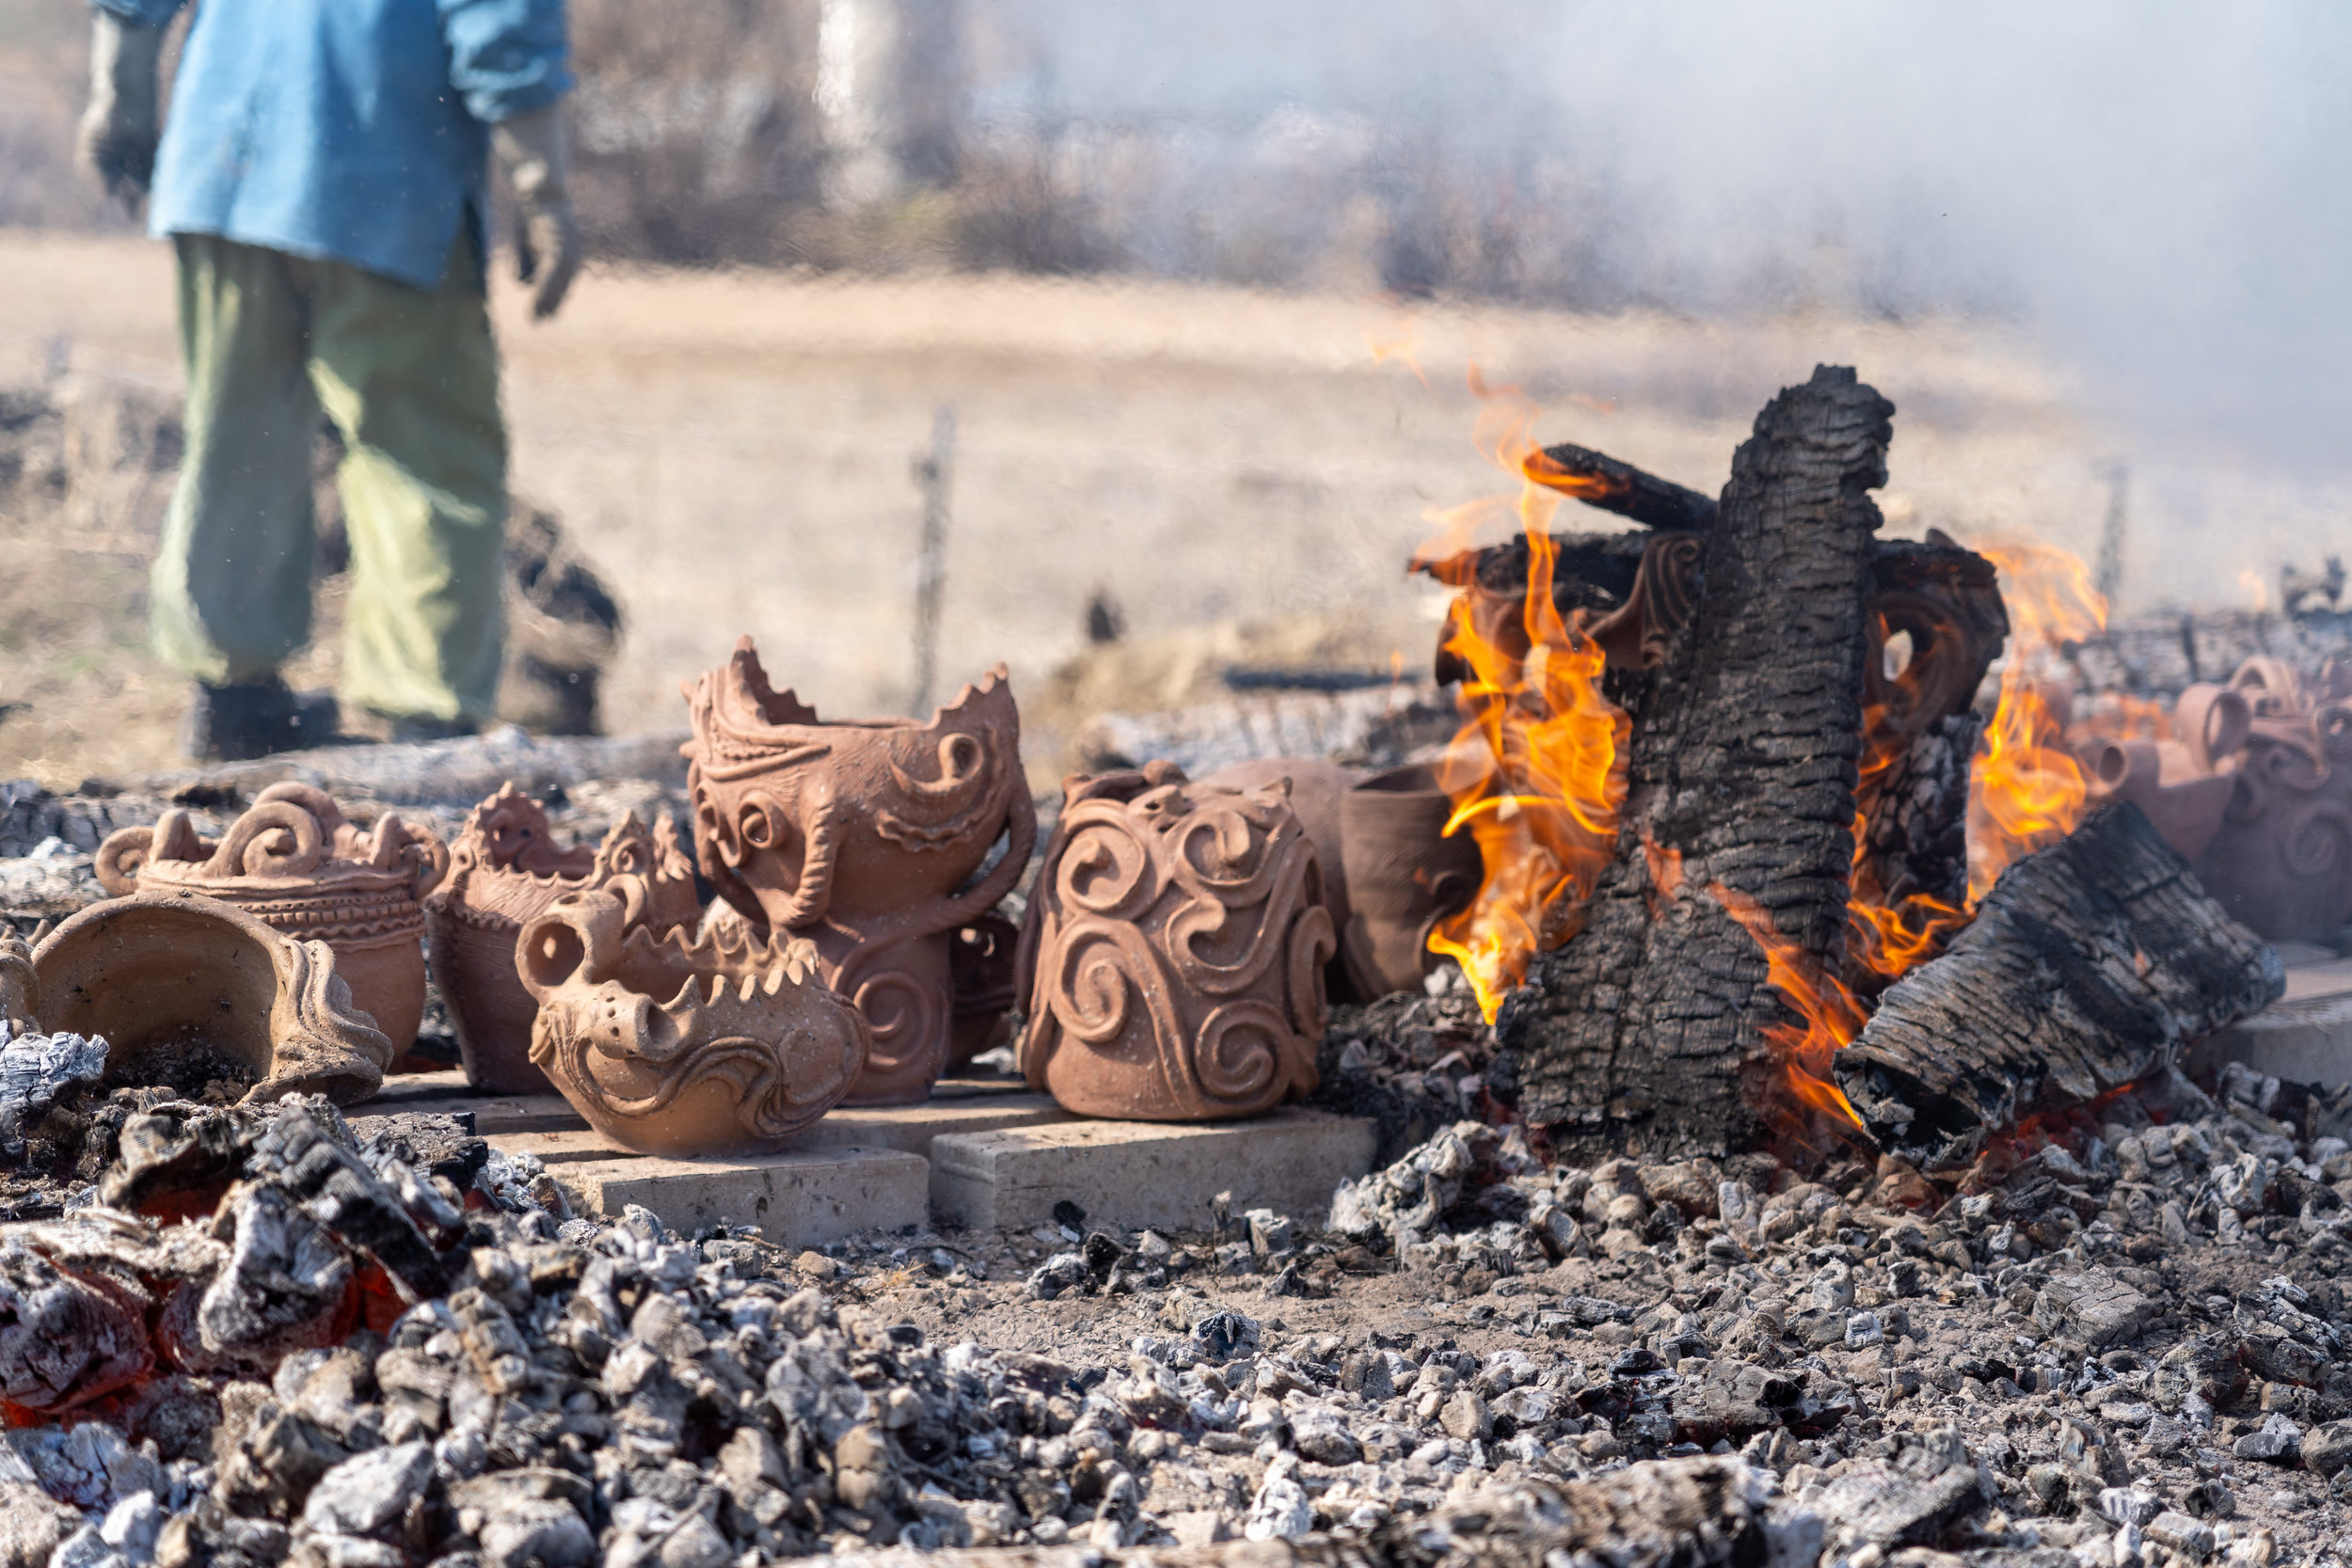 Jomon Firing 2019-136.jpg